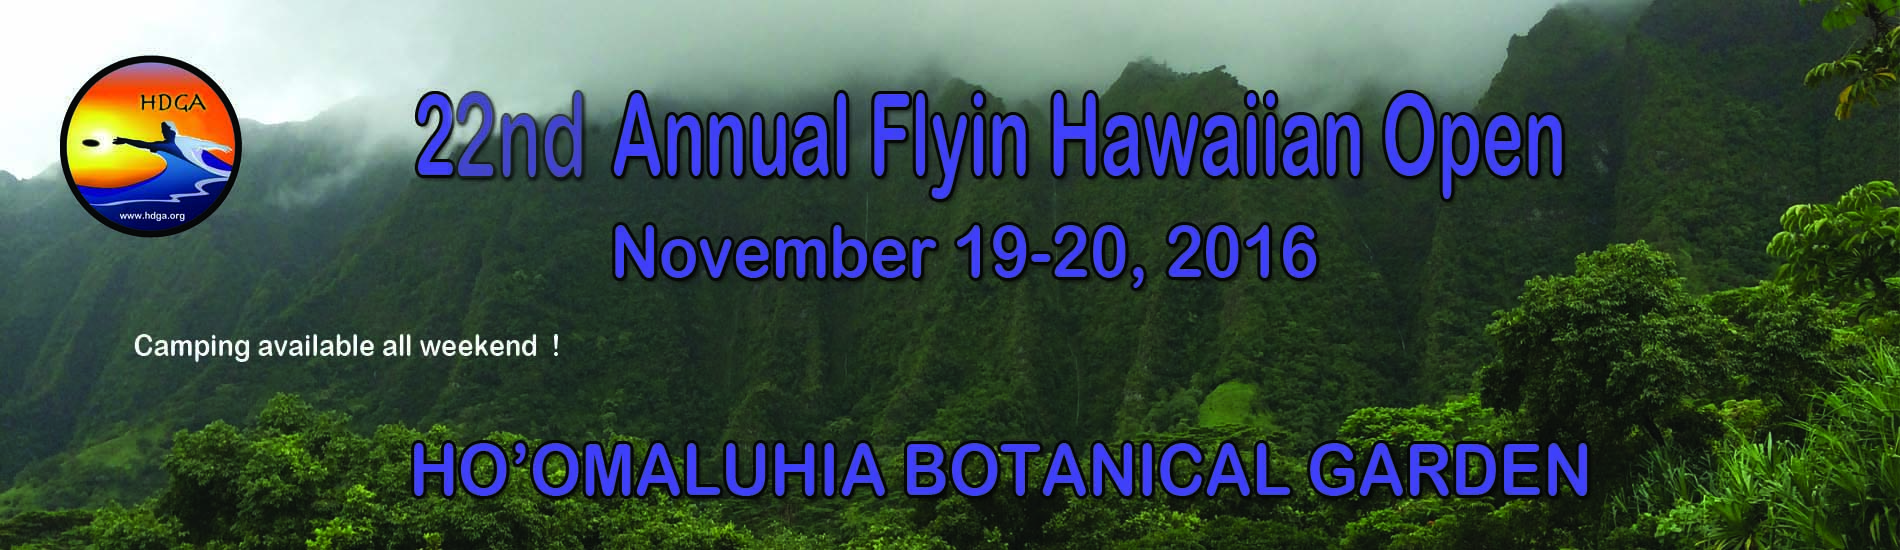 22nd. Annual Flyin Hawaiian Open Banner